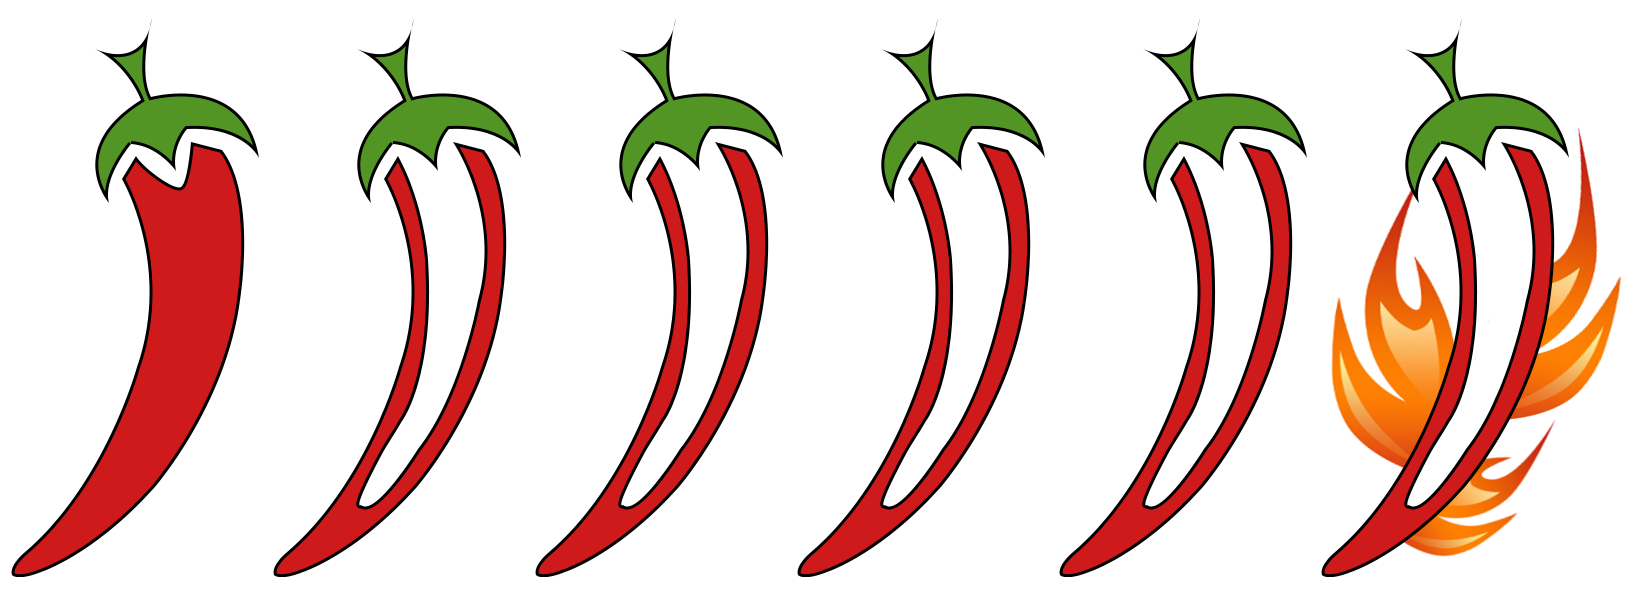 Jalapeno clipart chili garlic. Papaya pickle indian daddy